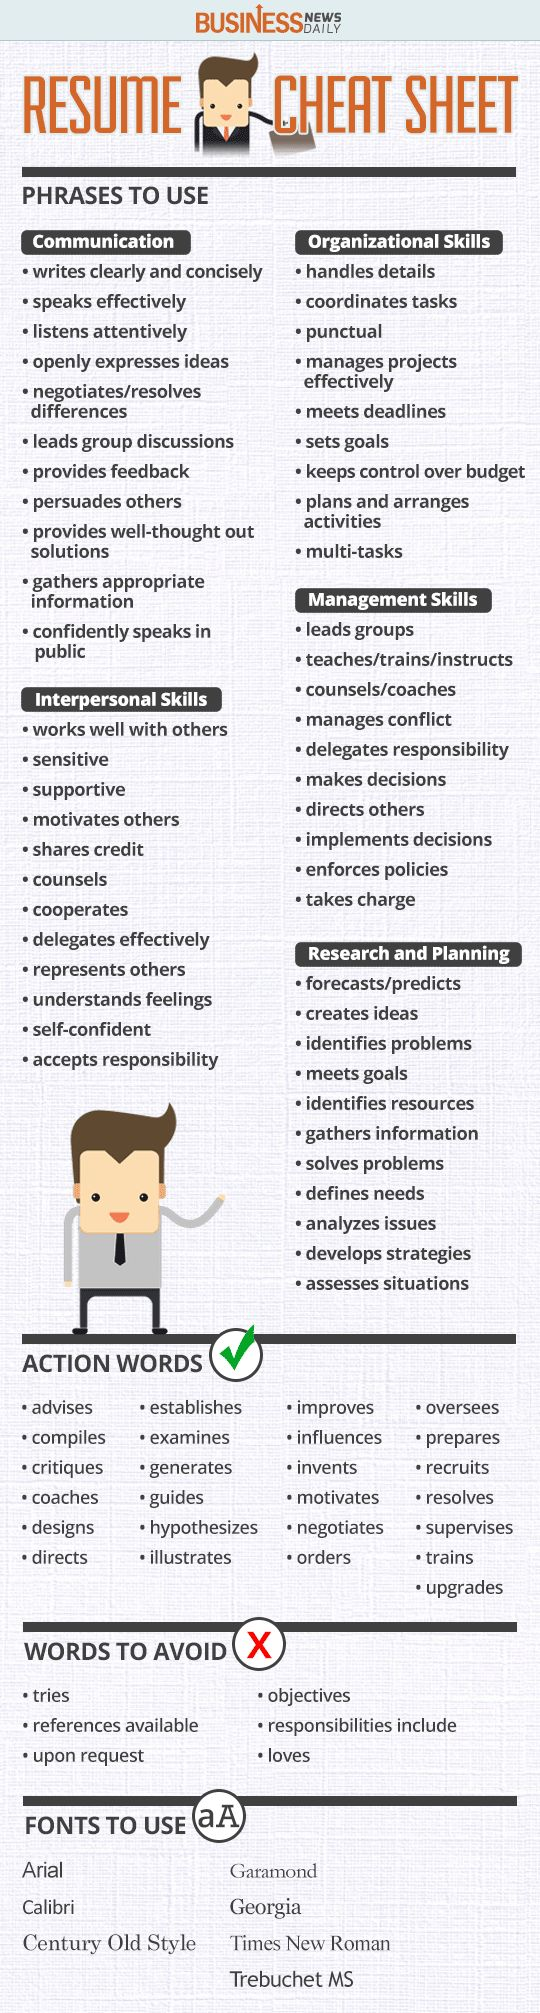 Opposenewapstandardsus  Gorgeous  Ideas About Resume On Pinterest  Cv Format Resume Cv And  With Luxury Resume Cheat Sheet Infographic Andrews Almost Done With A Complete Unit On Employment Which With Amusing Cute Resume Templates Also Resumes Builder In Addition Relevant Experience Resume And Great Resume Objective Statements Examples As Well As Lpn Resume Objective Additionally Nurse Practitioner Resume Examples From Pinterestcom With Opposenewapstandardsus  Luxury  Ideas About Resume On Pinterest  Cv Format Resume Cv And  With Amusing Resume Cheat Sheet Infographic Andrews Almost Done With A Complete Unit On Employment Which And Gorgeous Cute Resume Templates Also Resumes Builder In Addition Relevant Experience Resume From Pinterestcom